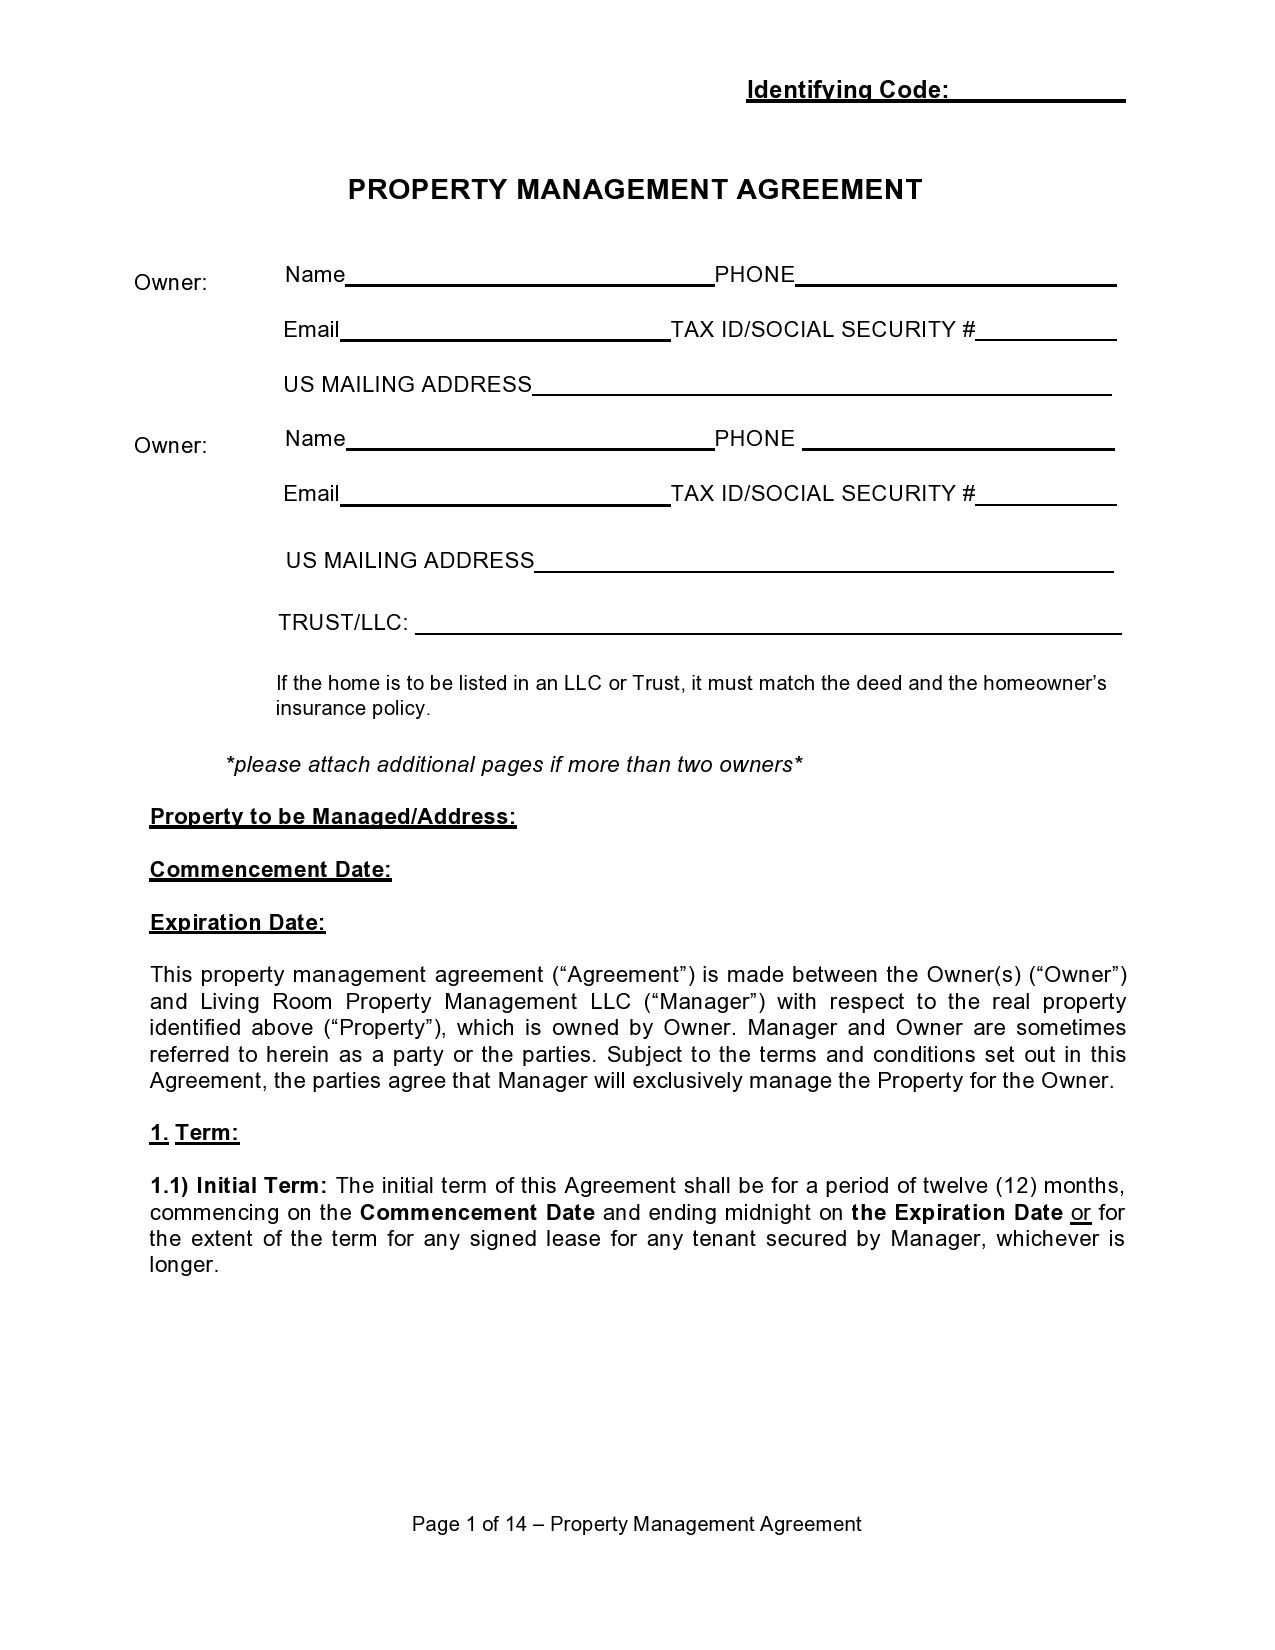 005 Simple Property Management Agreement Template Sample  Templates Termination Of Commercial FormFull